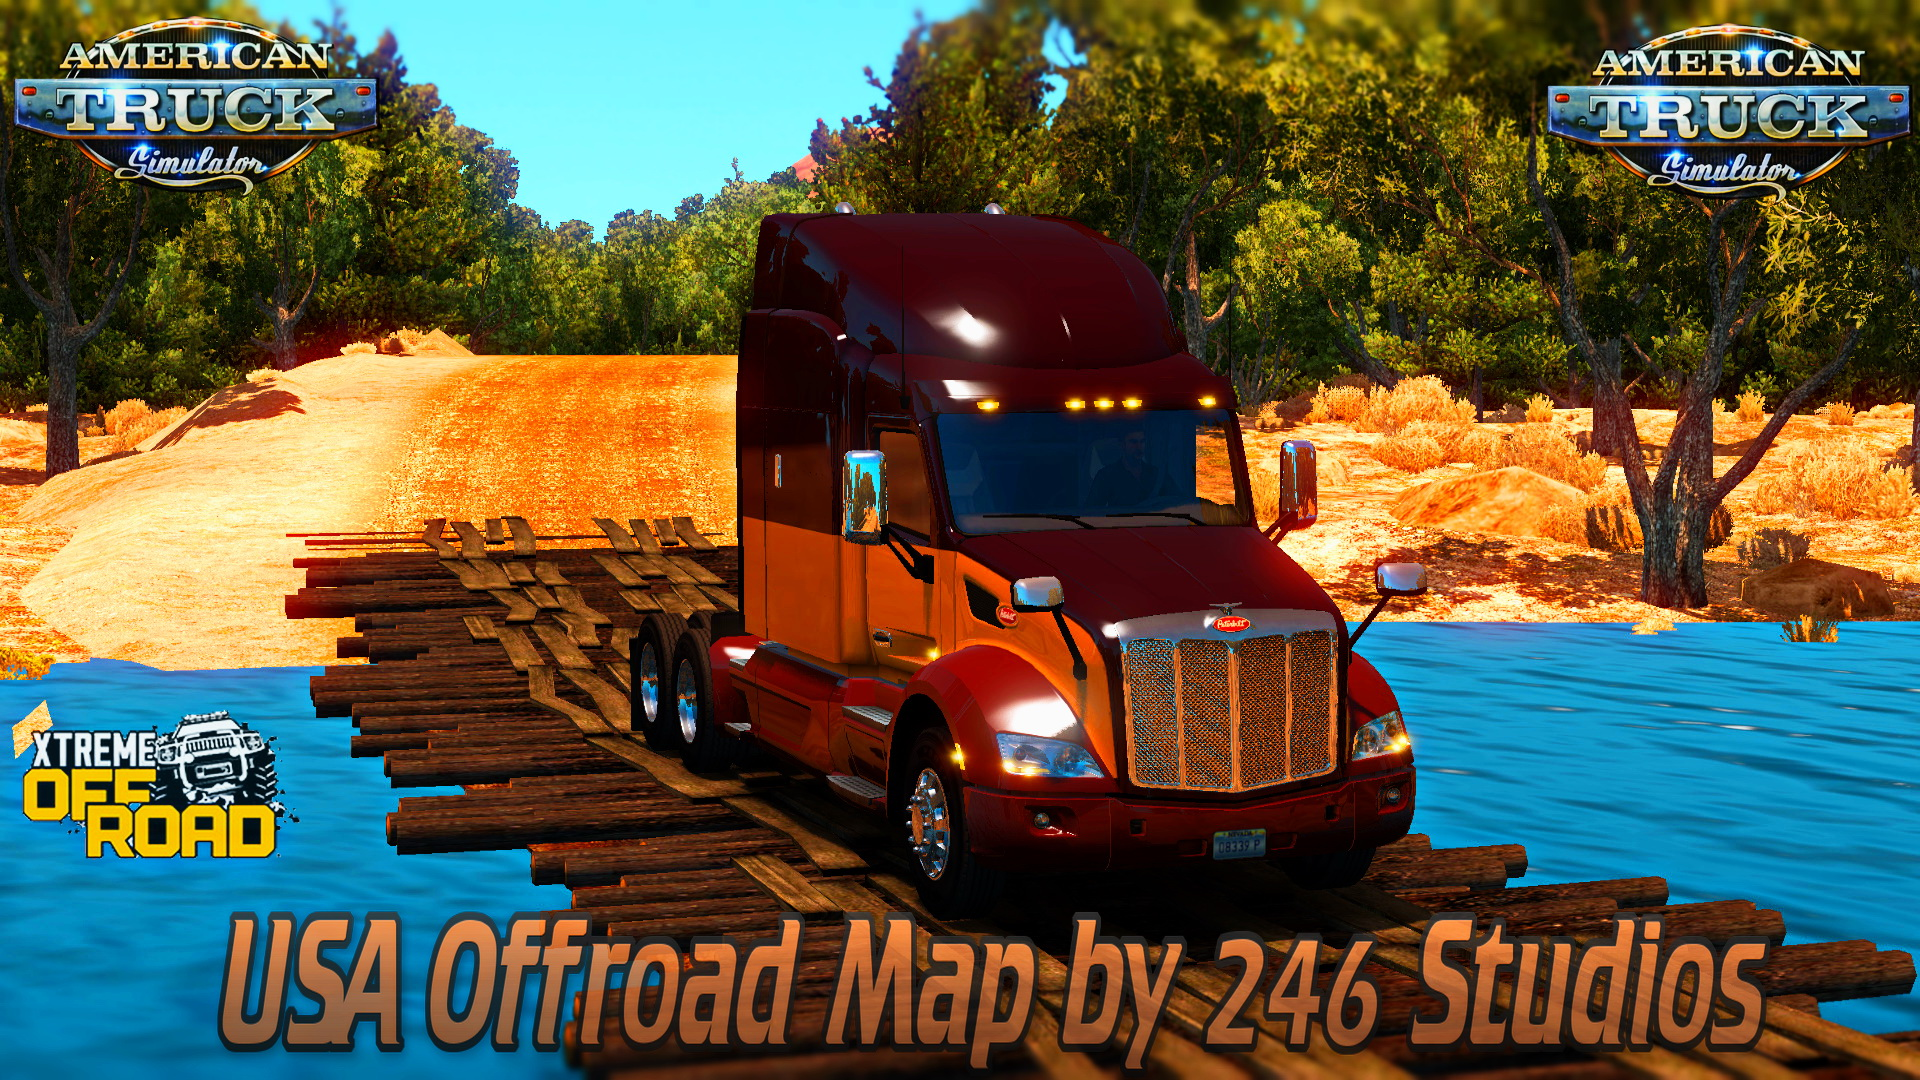 USA Offroad Map by 246 Studios for ATS (American Truck Simulator)